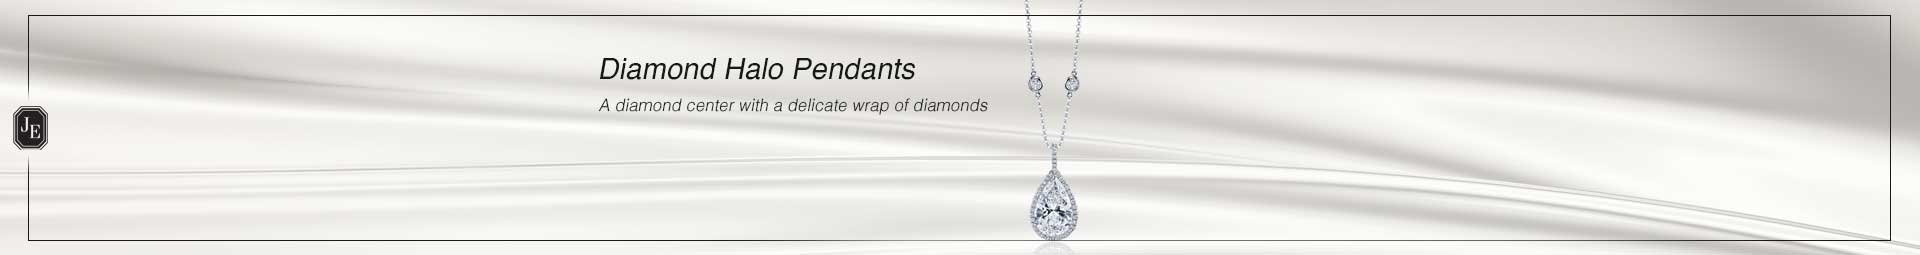 Diamond Halo Pendants